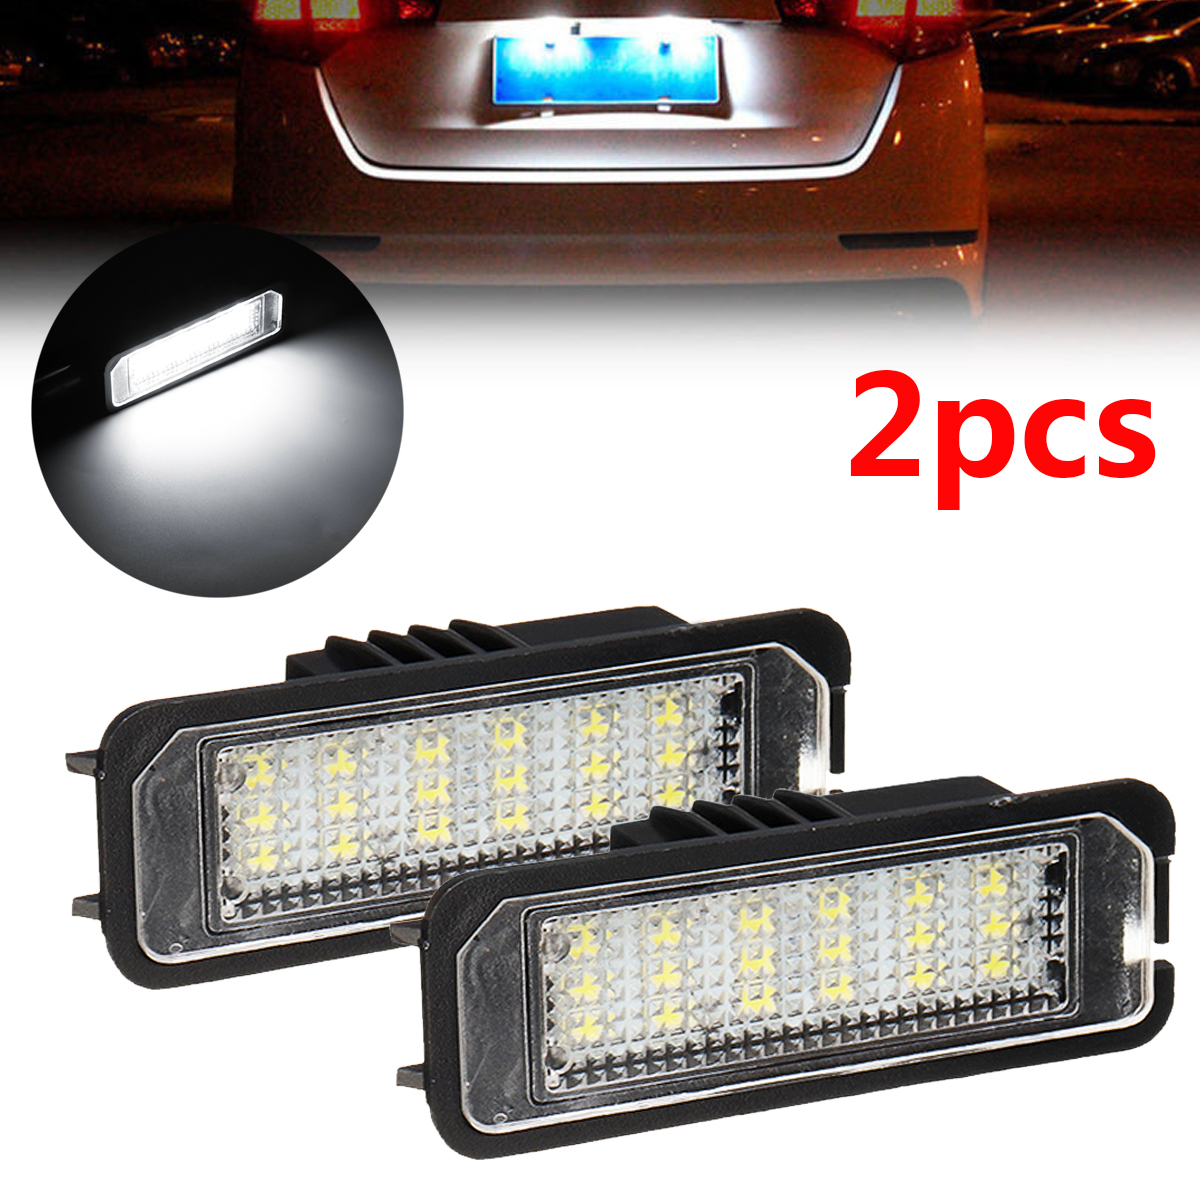 Autoleader 2pcs LED License Plate Light for VW Golf 4/ 5 Passat 3C Limo Lupo Polo 9N Universal Cable Auto Car Lights Signal Lamp 2x 18 led canbus auto number license plate light car styling lamp bulbs for vw altea eos polo passat skoda superb golf 5 6 4